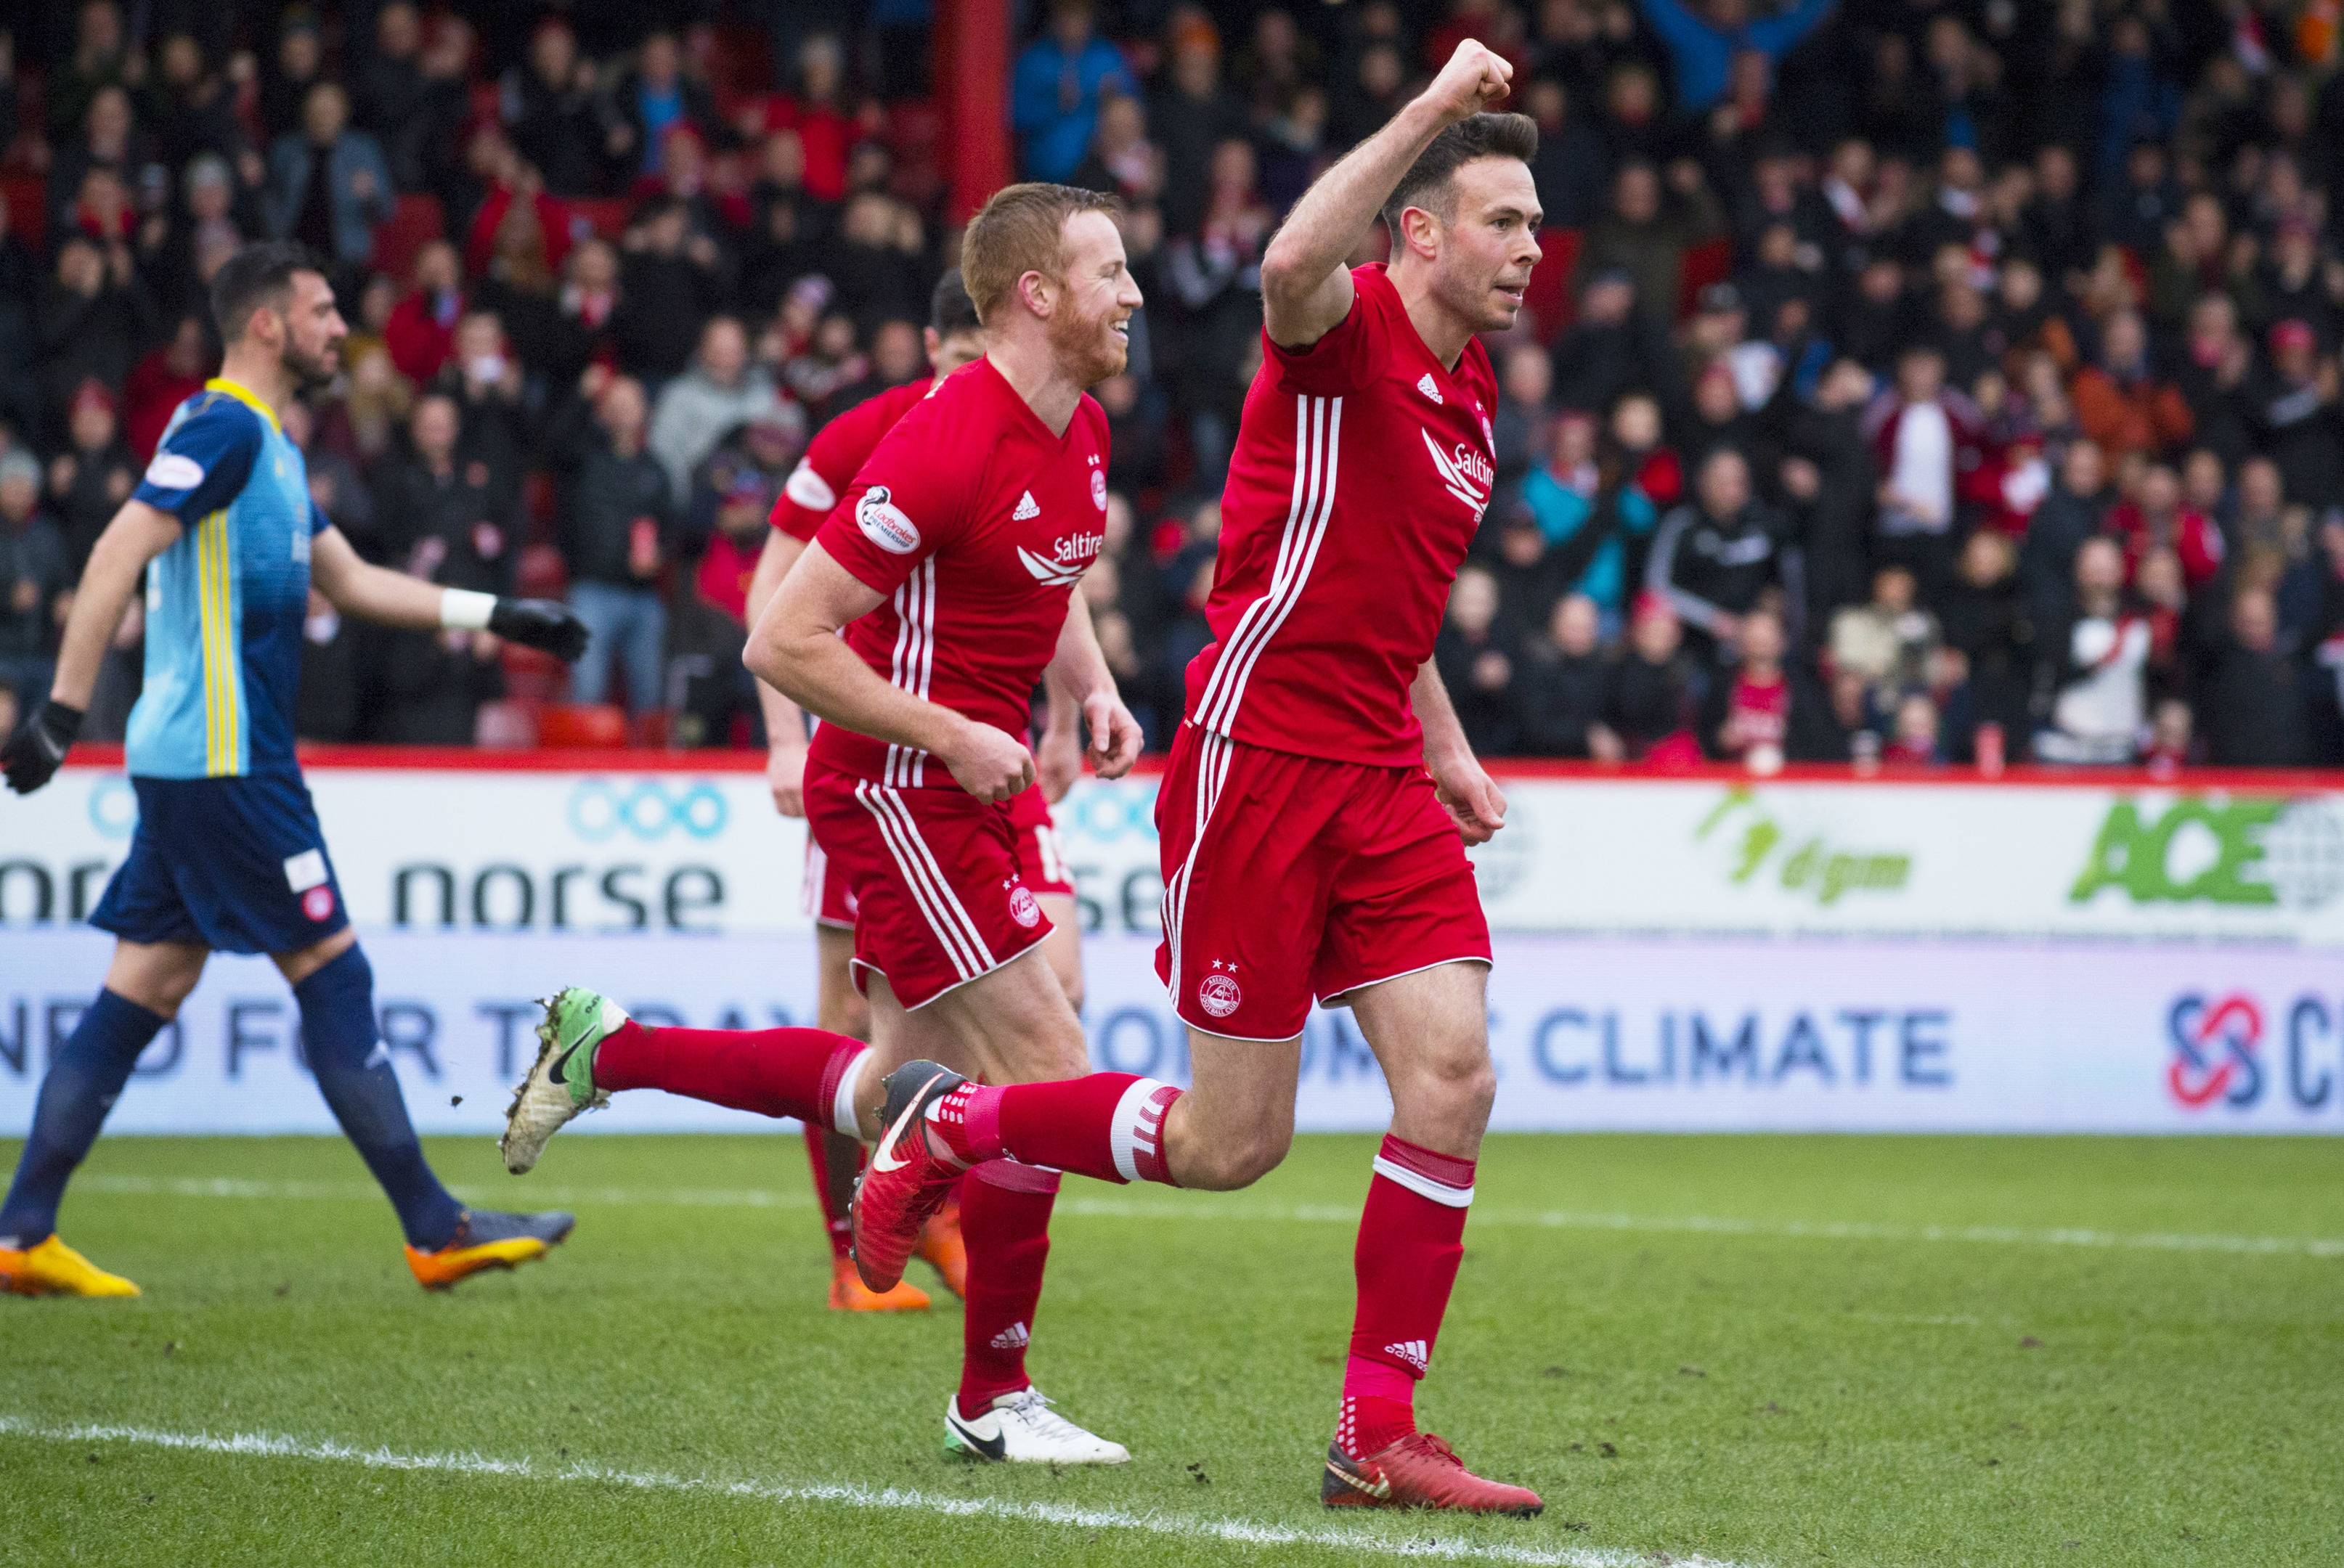 Aberdeen's Andrew Considine celebrates after making it 1-0.